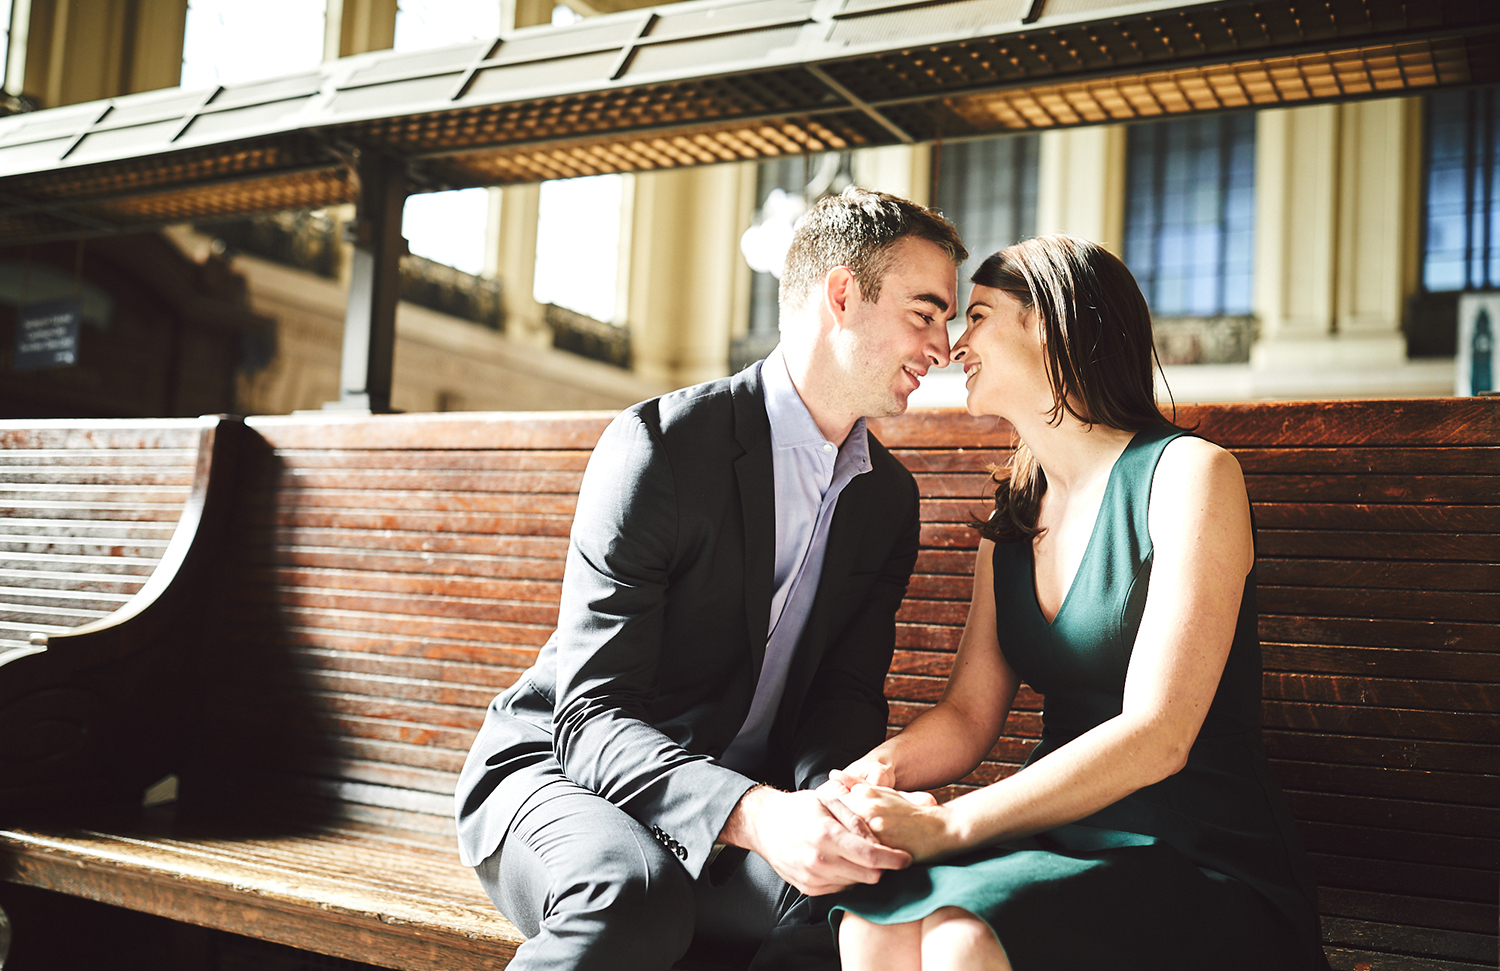 180422_StevensInstitureofTechnologyEngagementPhotography_HobokenEngagement Photography_By_BriJohnsonWeddings_0011.jpg